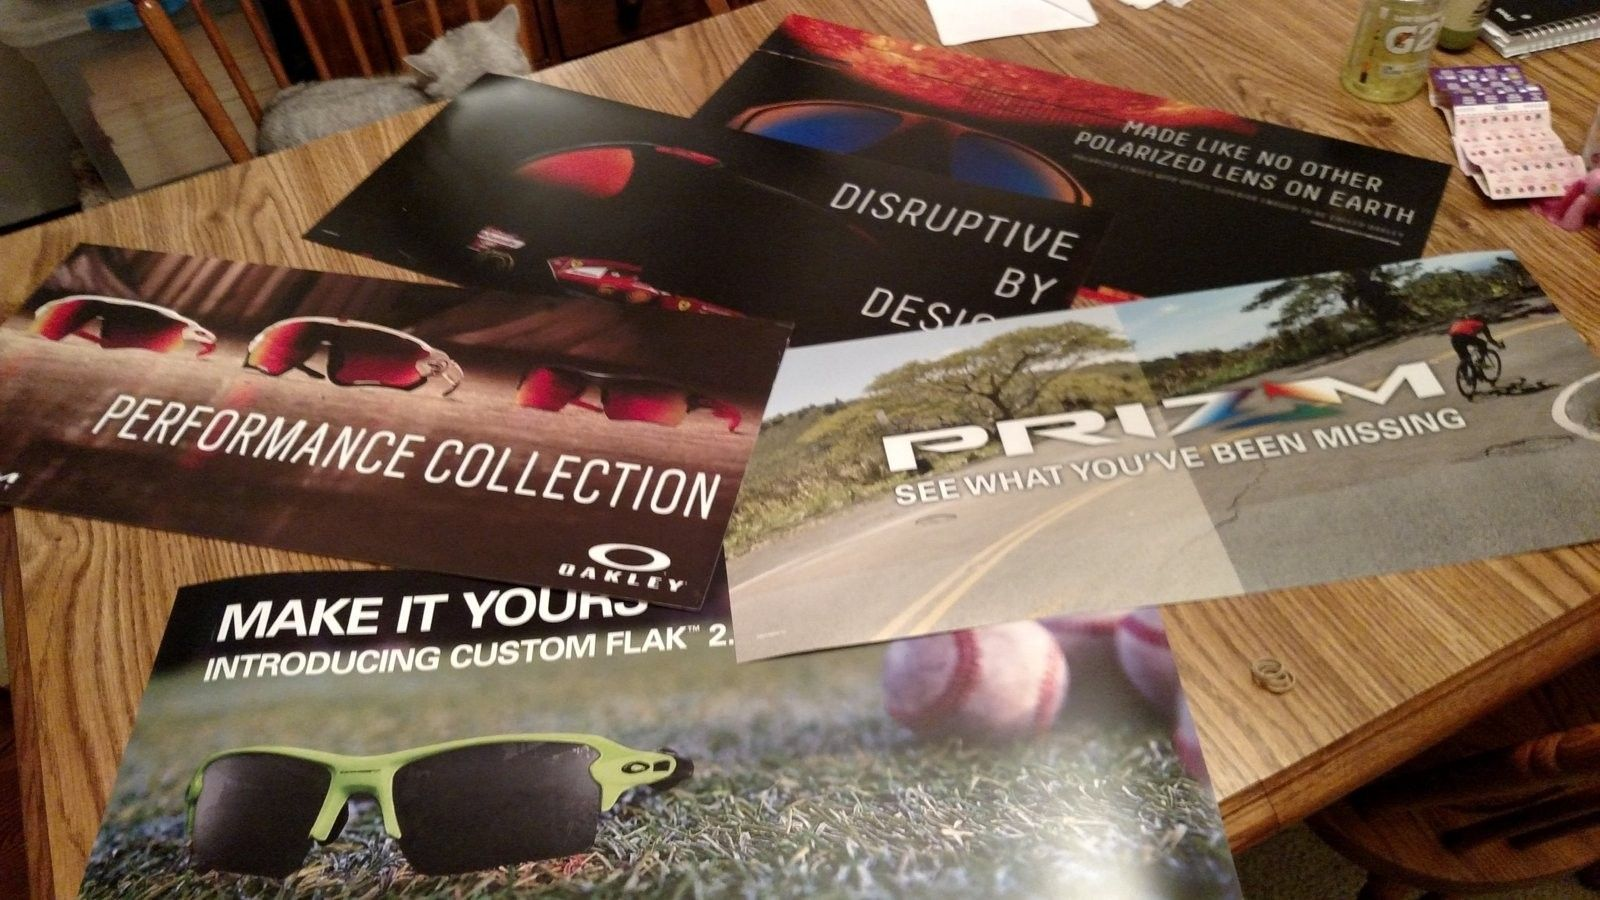 Five Posters....how much?  $22? shipped - IMG_20160614_021633673 (1).jpg